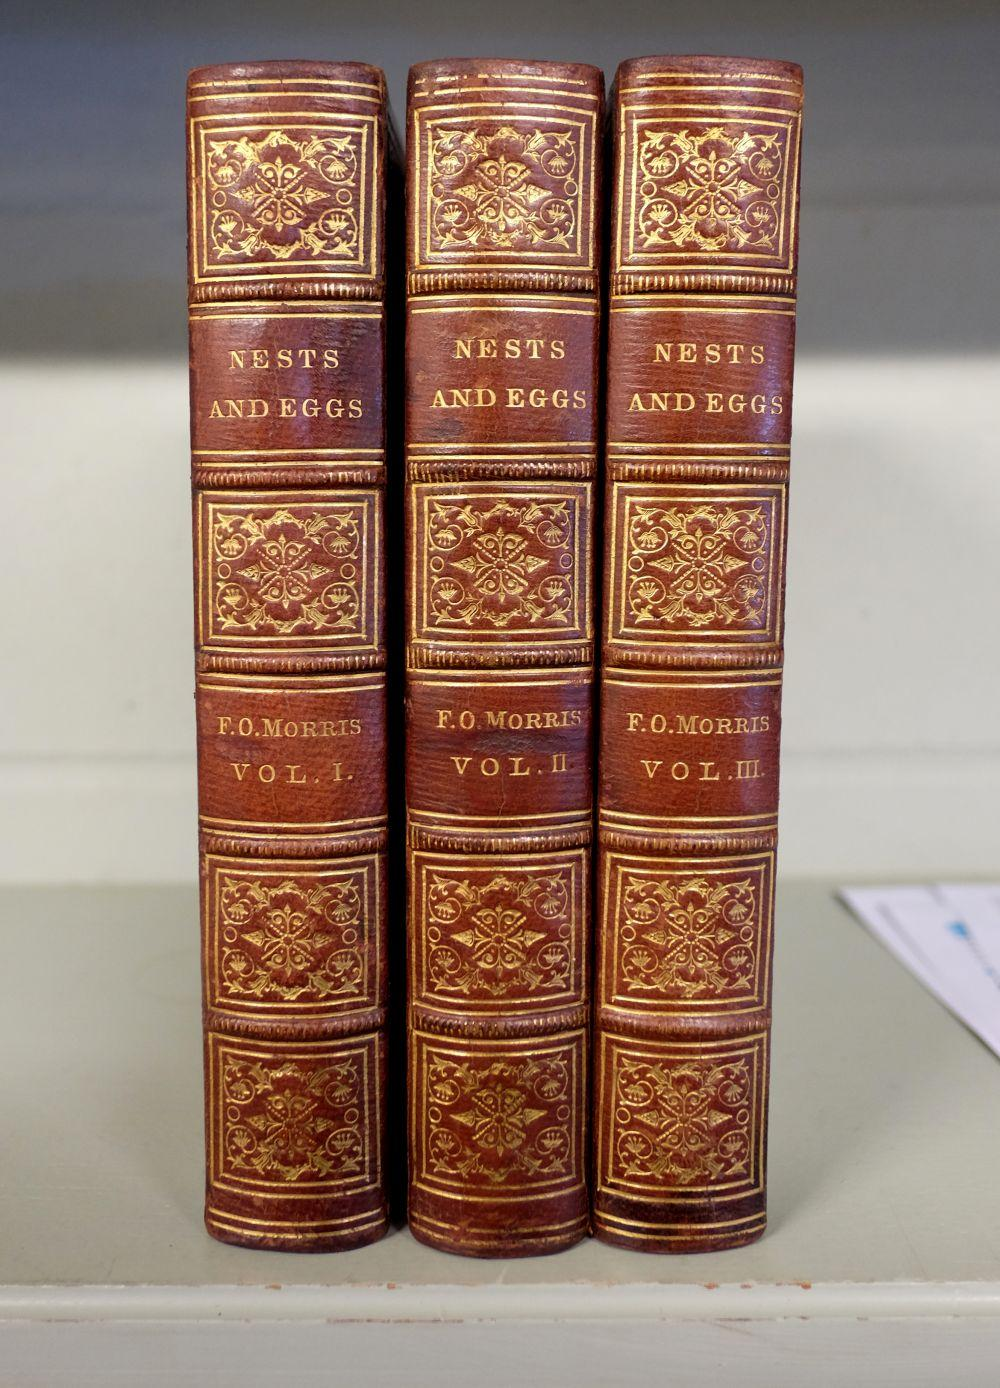 Morris (F.O.) A Natural History of the Nests and Eggs of British Birds, 3 volumes, 1864